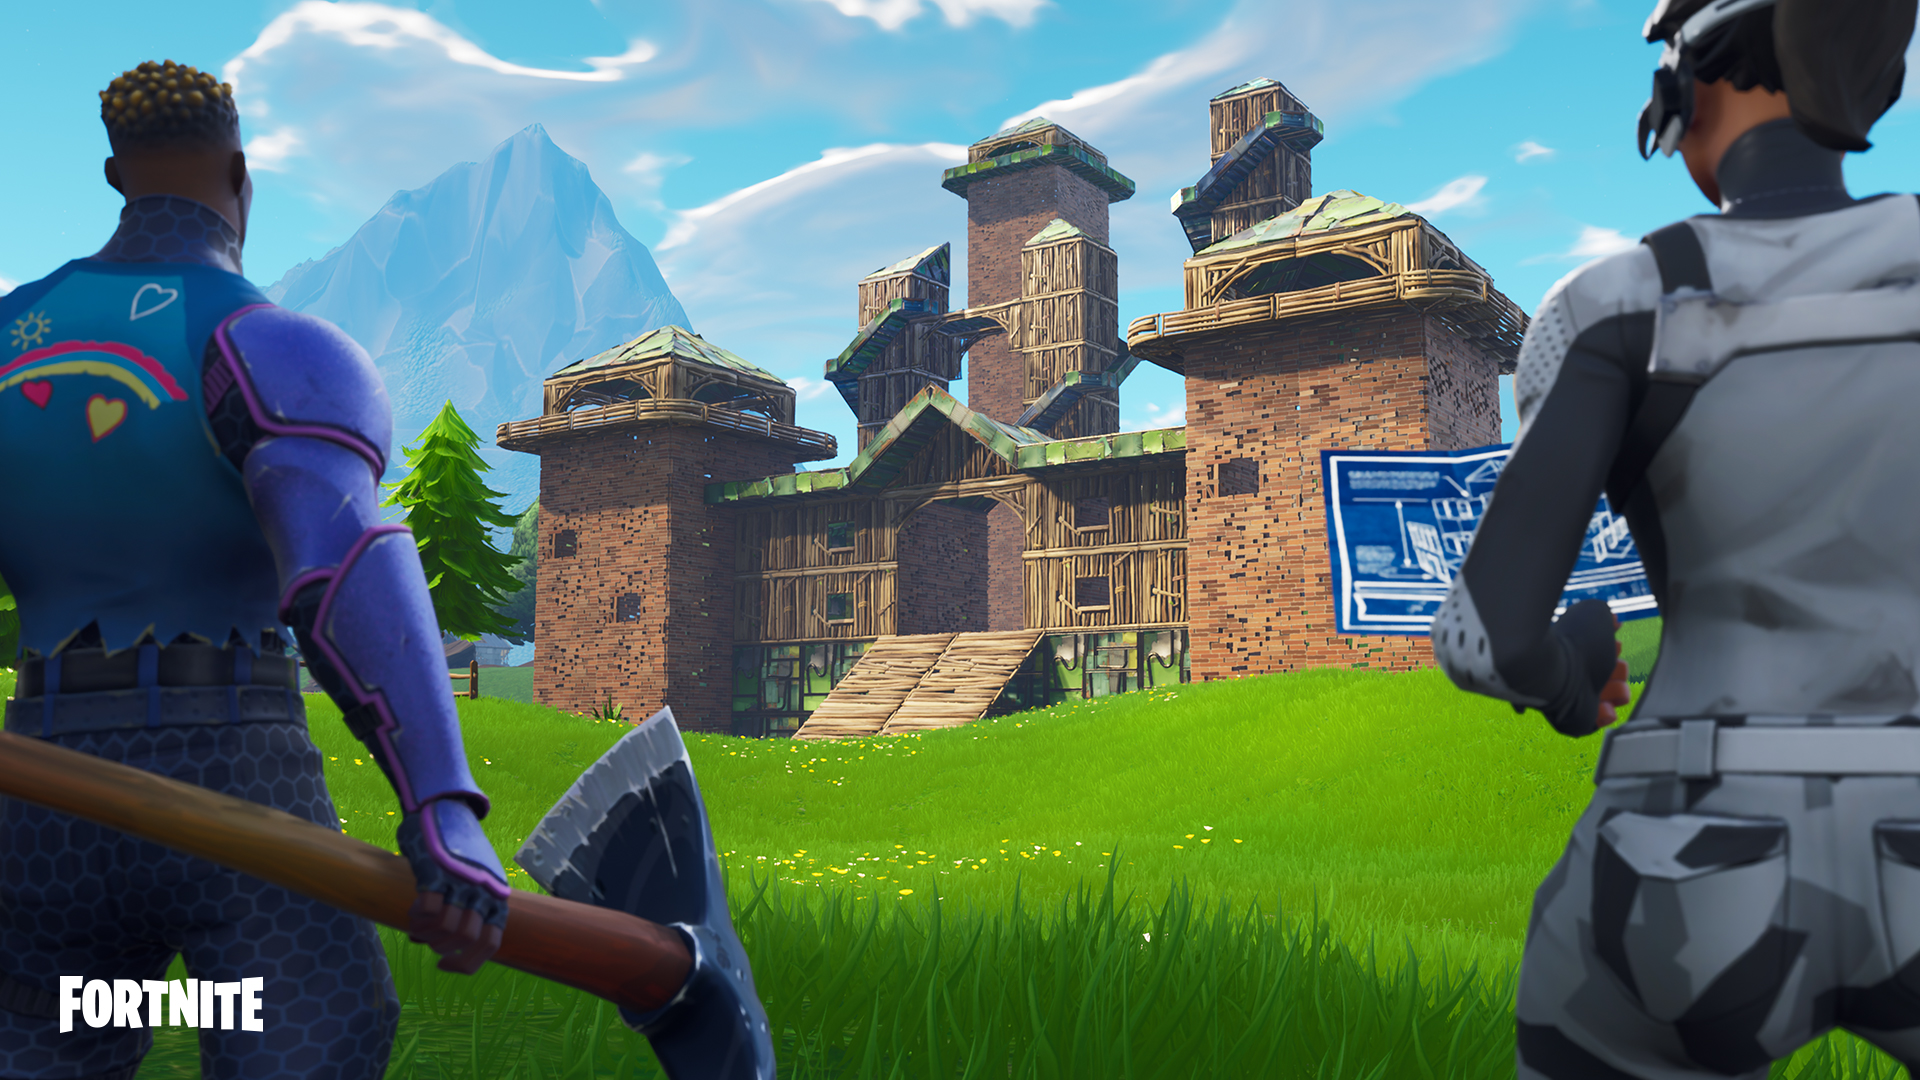 Fortnite introduces a 'cool' new element in its latest update